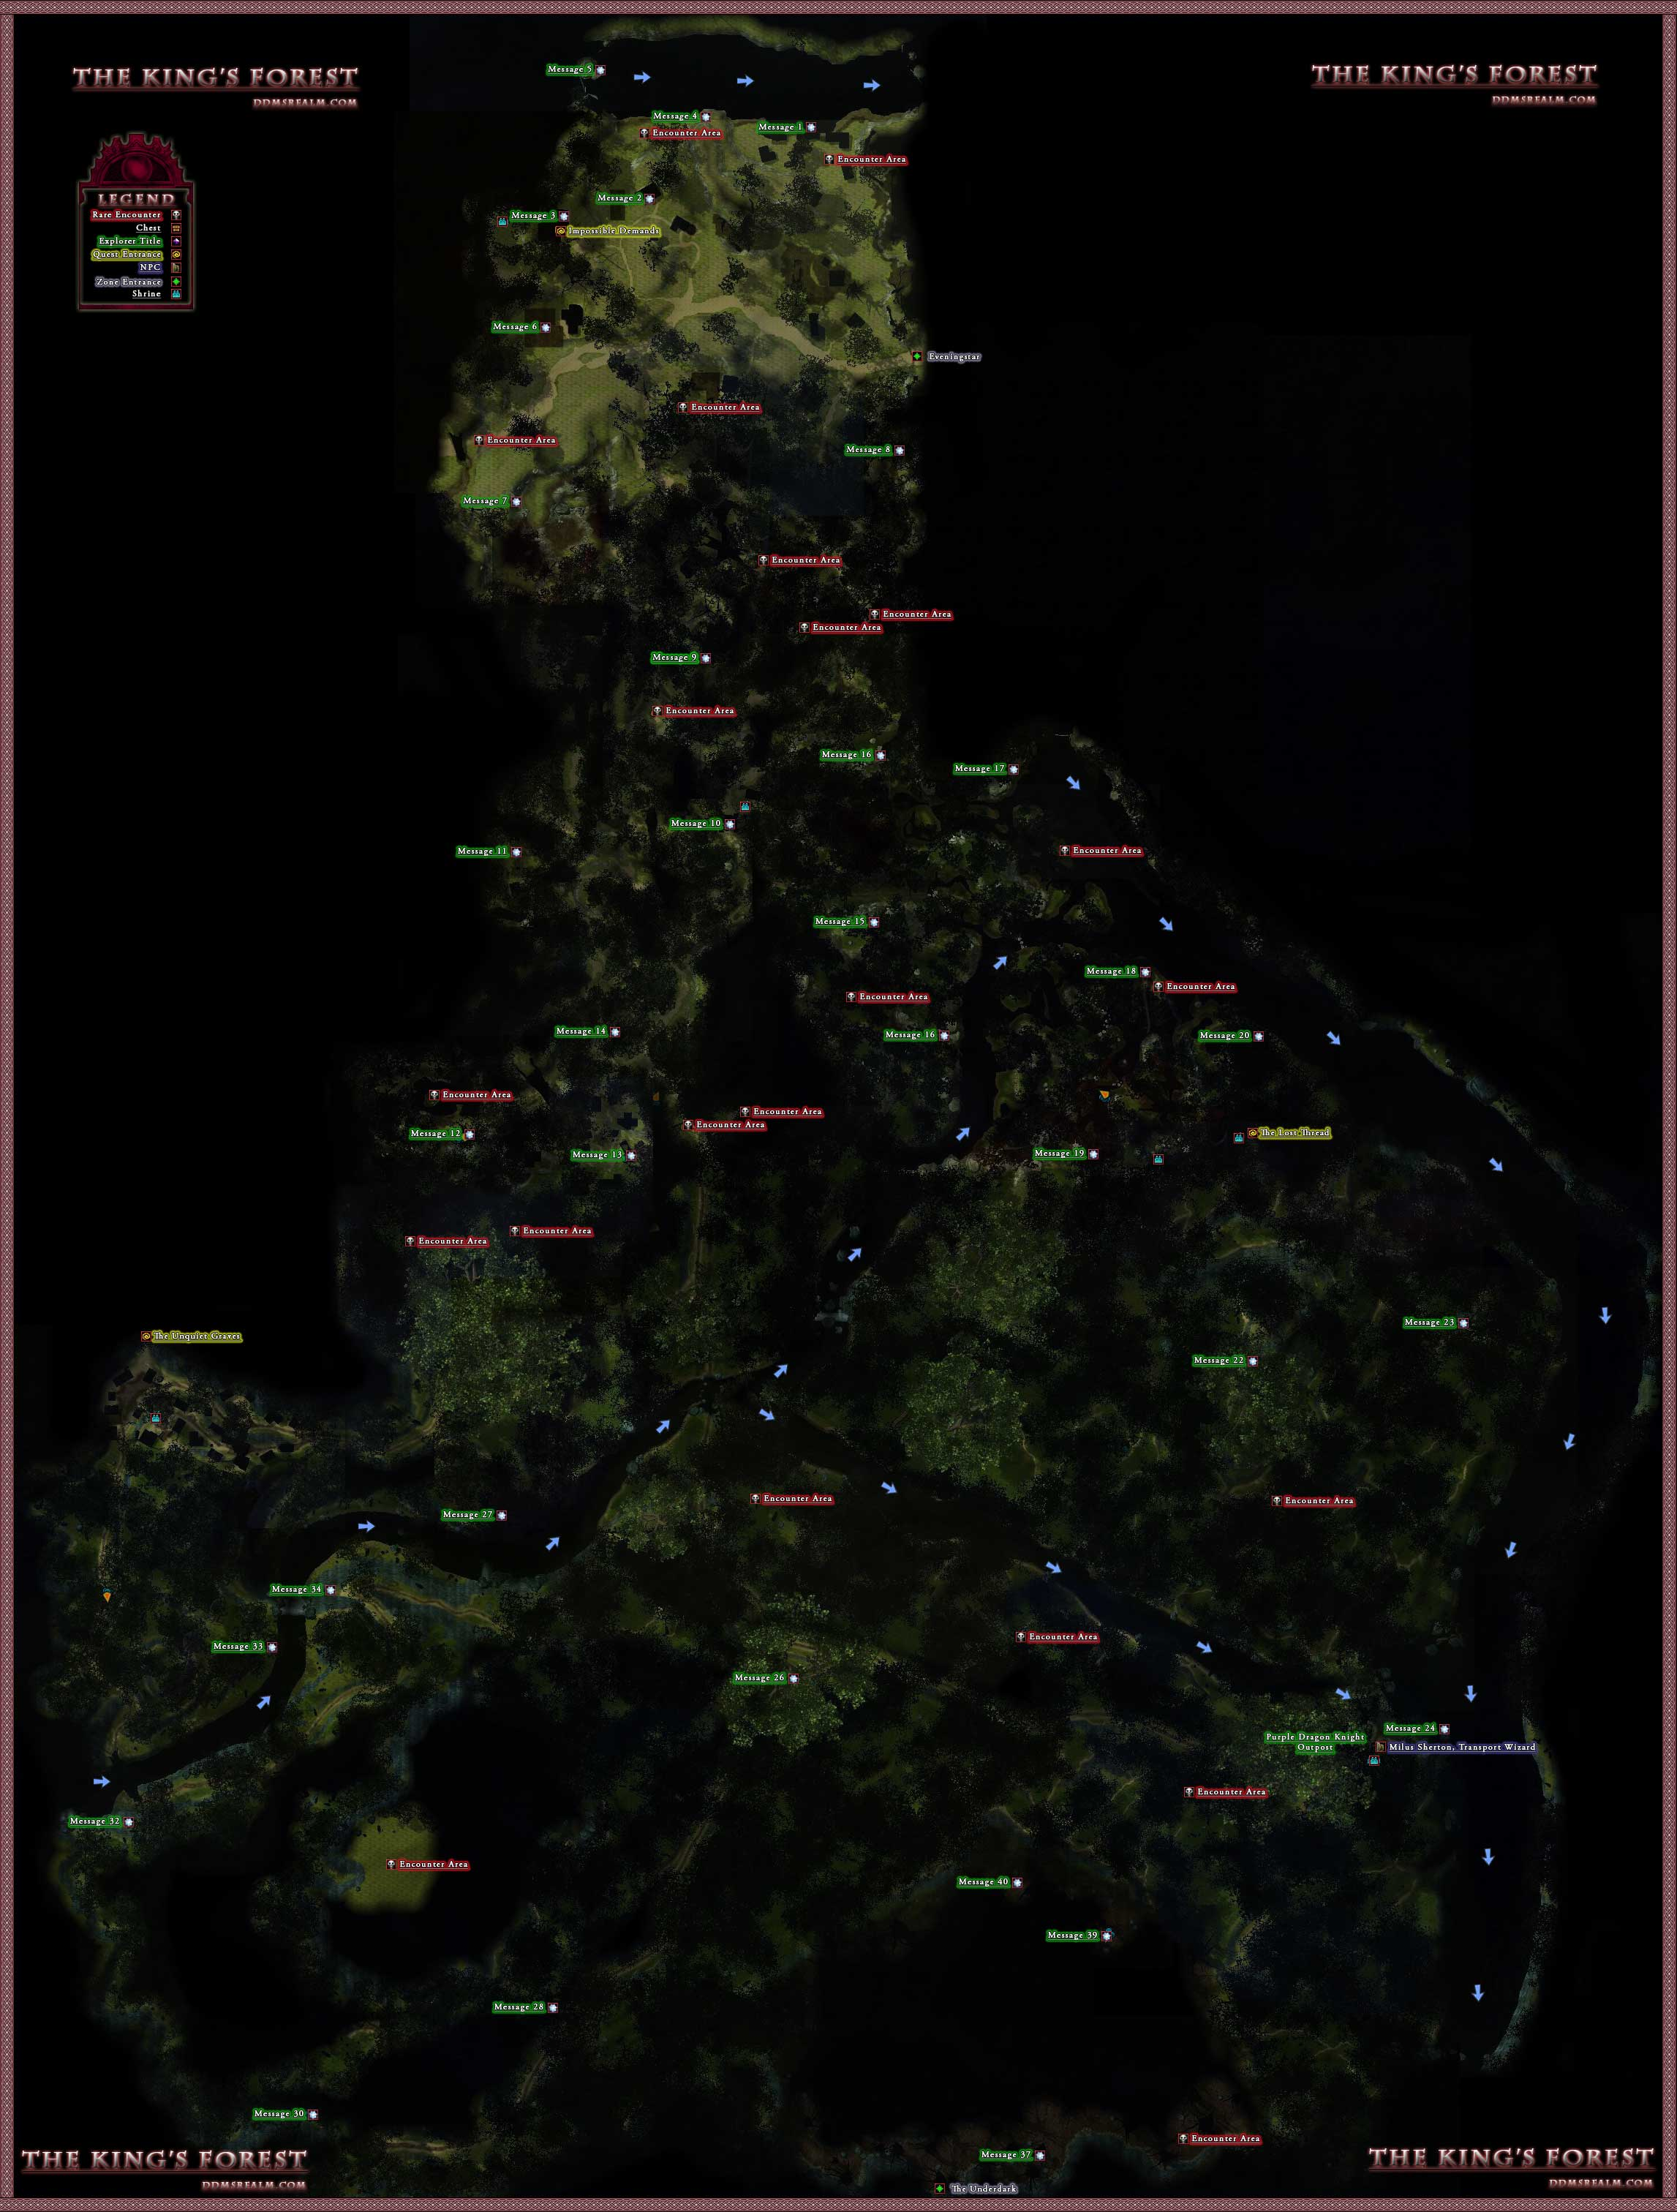 the-kings-forest-wilderness-map-dungeons-and-dragons-online